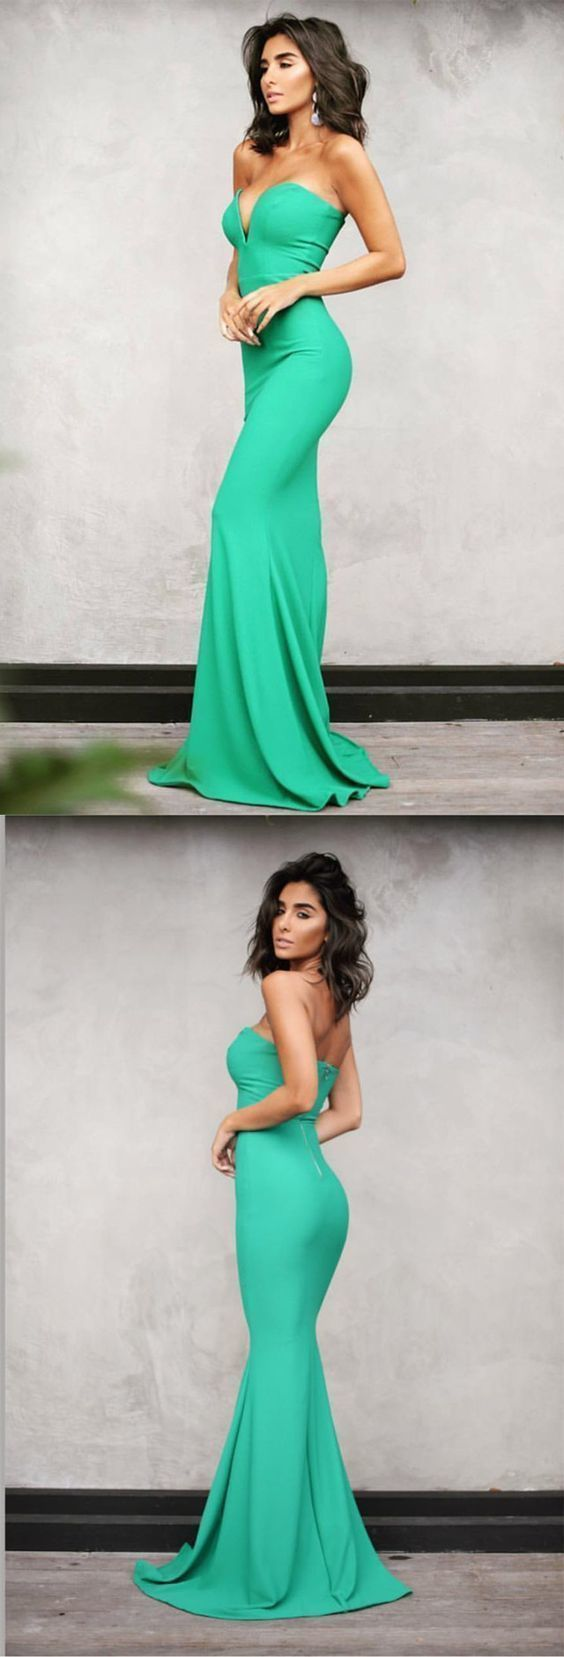 Green sweetheart mermaid prom dresses sexy long evening gowns in